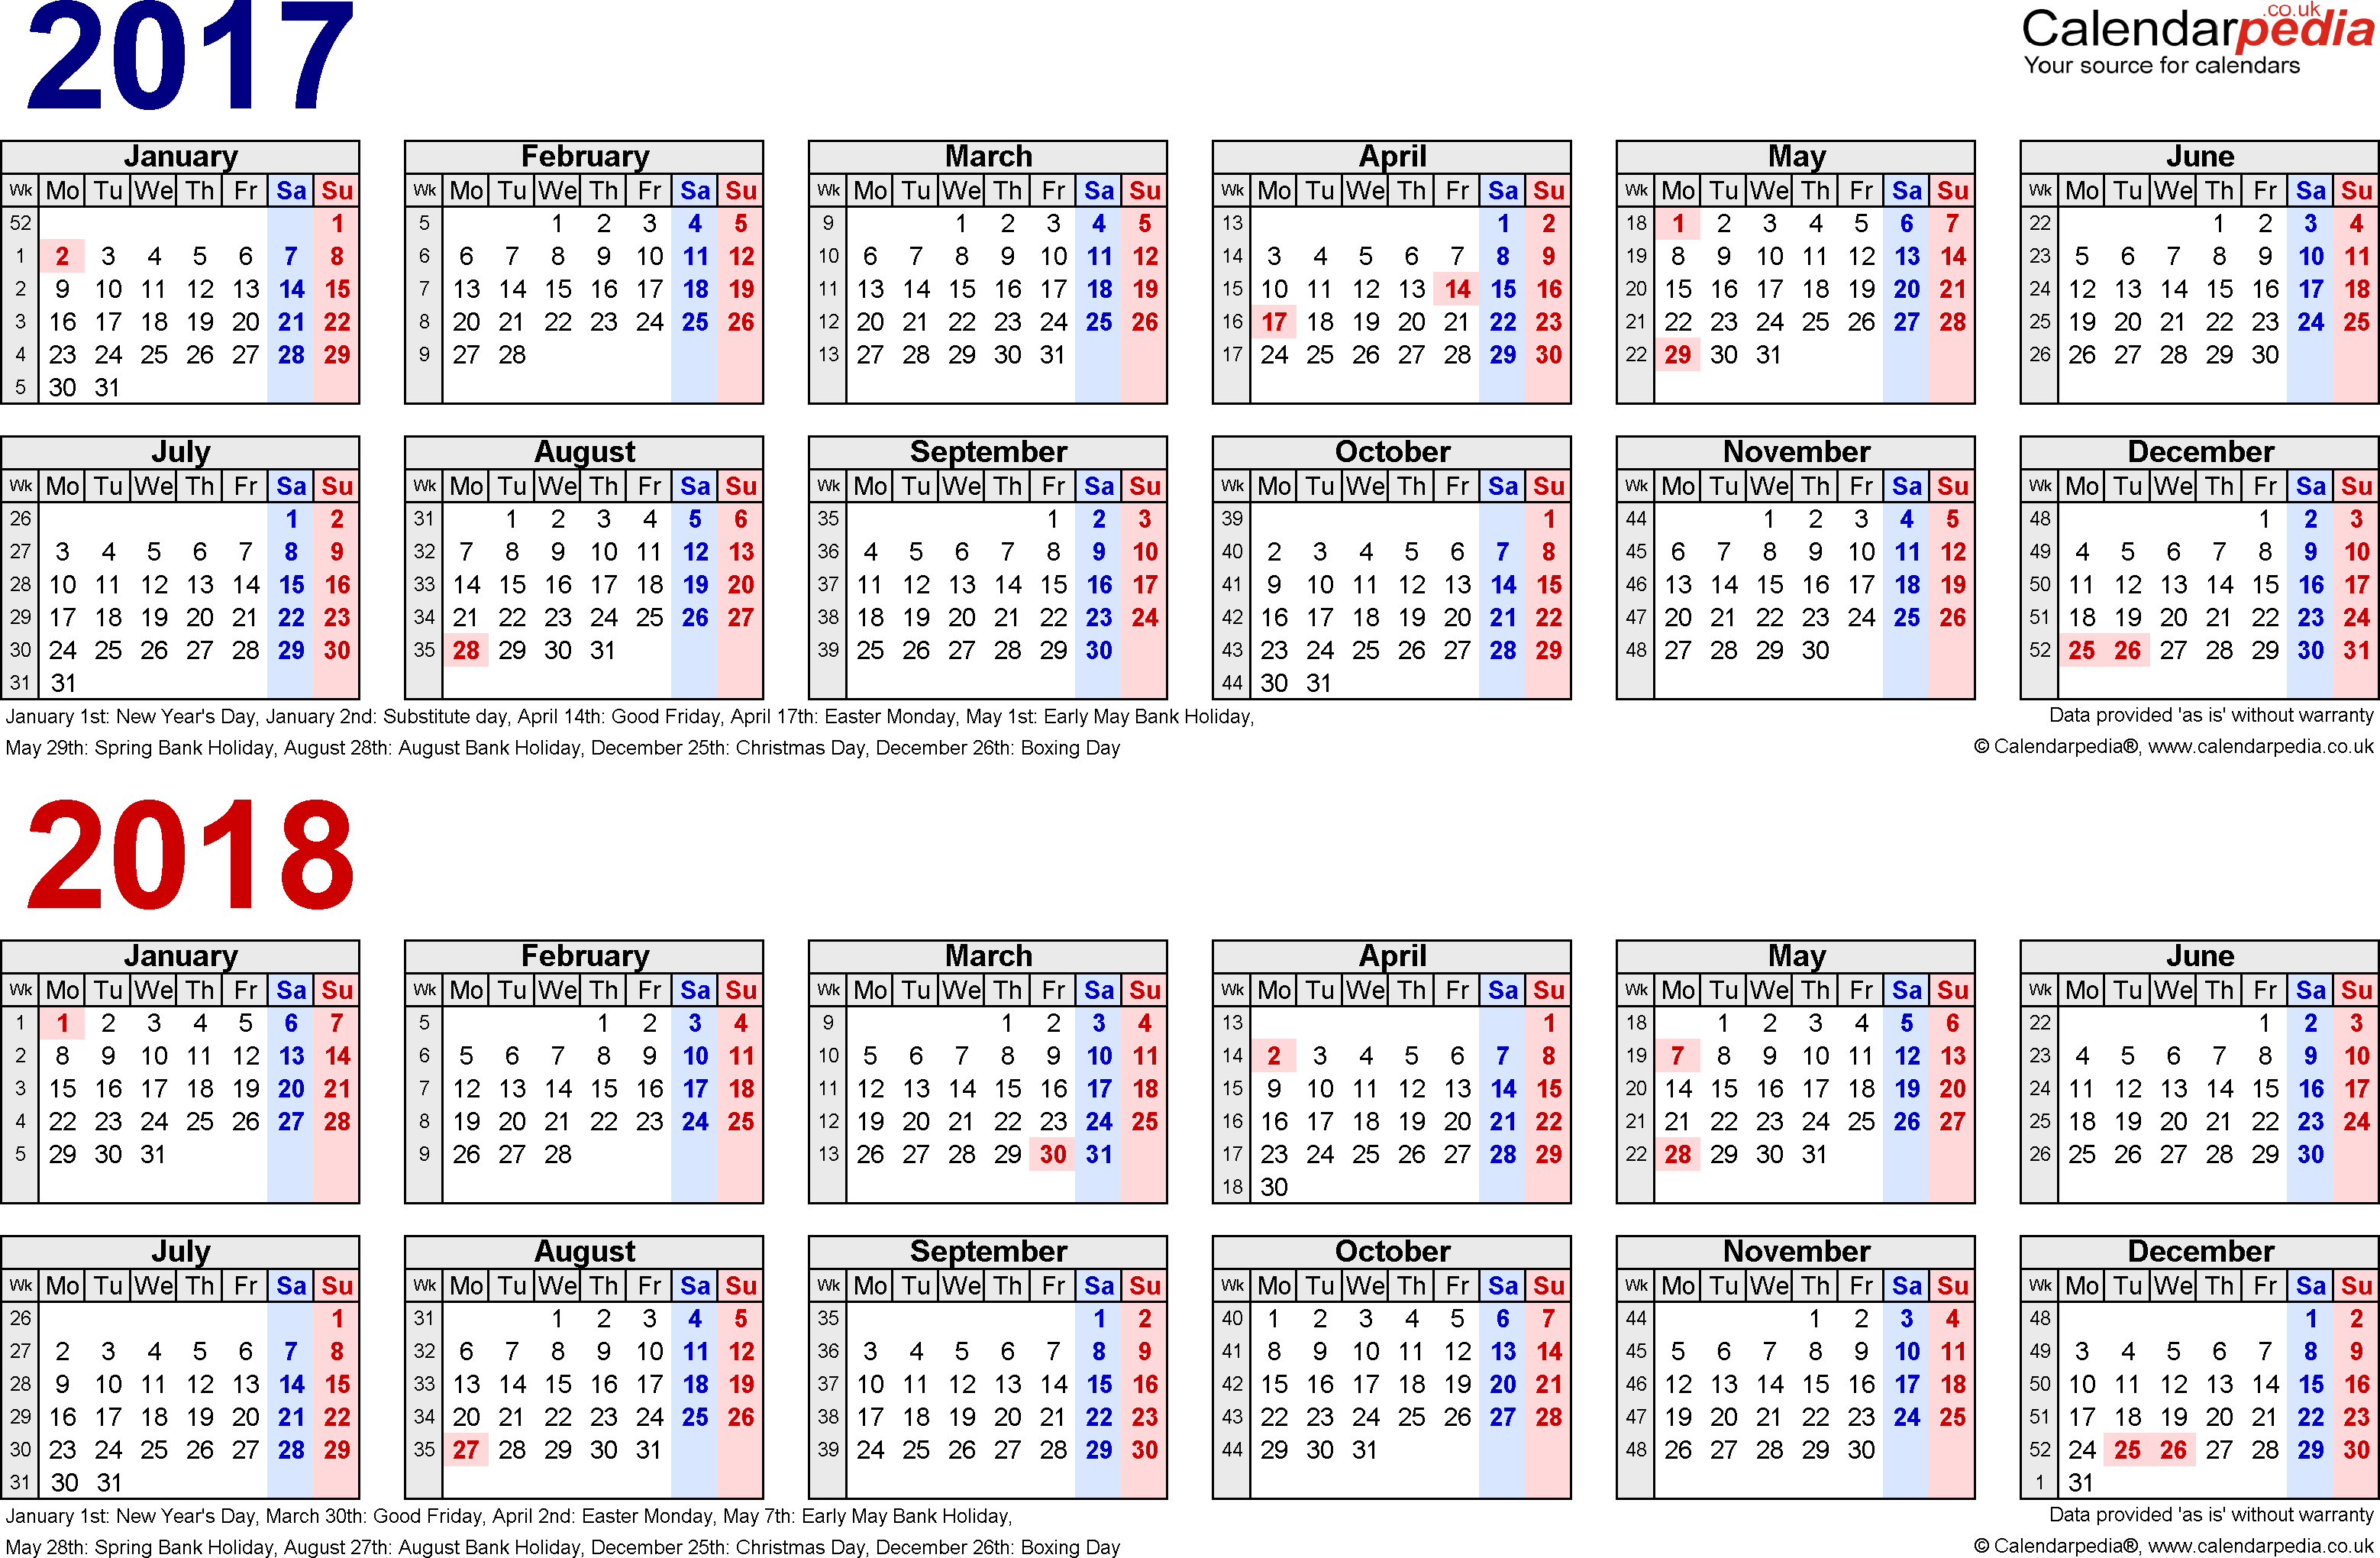 Template 1: Excel template for two year calendar 2017/2018 in blue/red (landscape orientation, 1 page, A4)